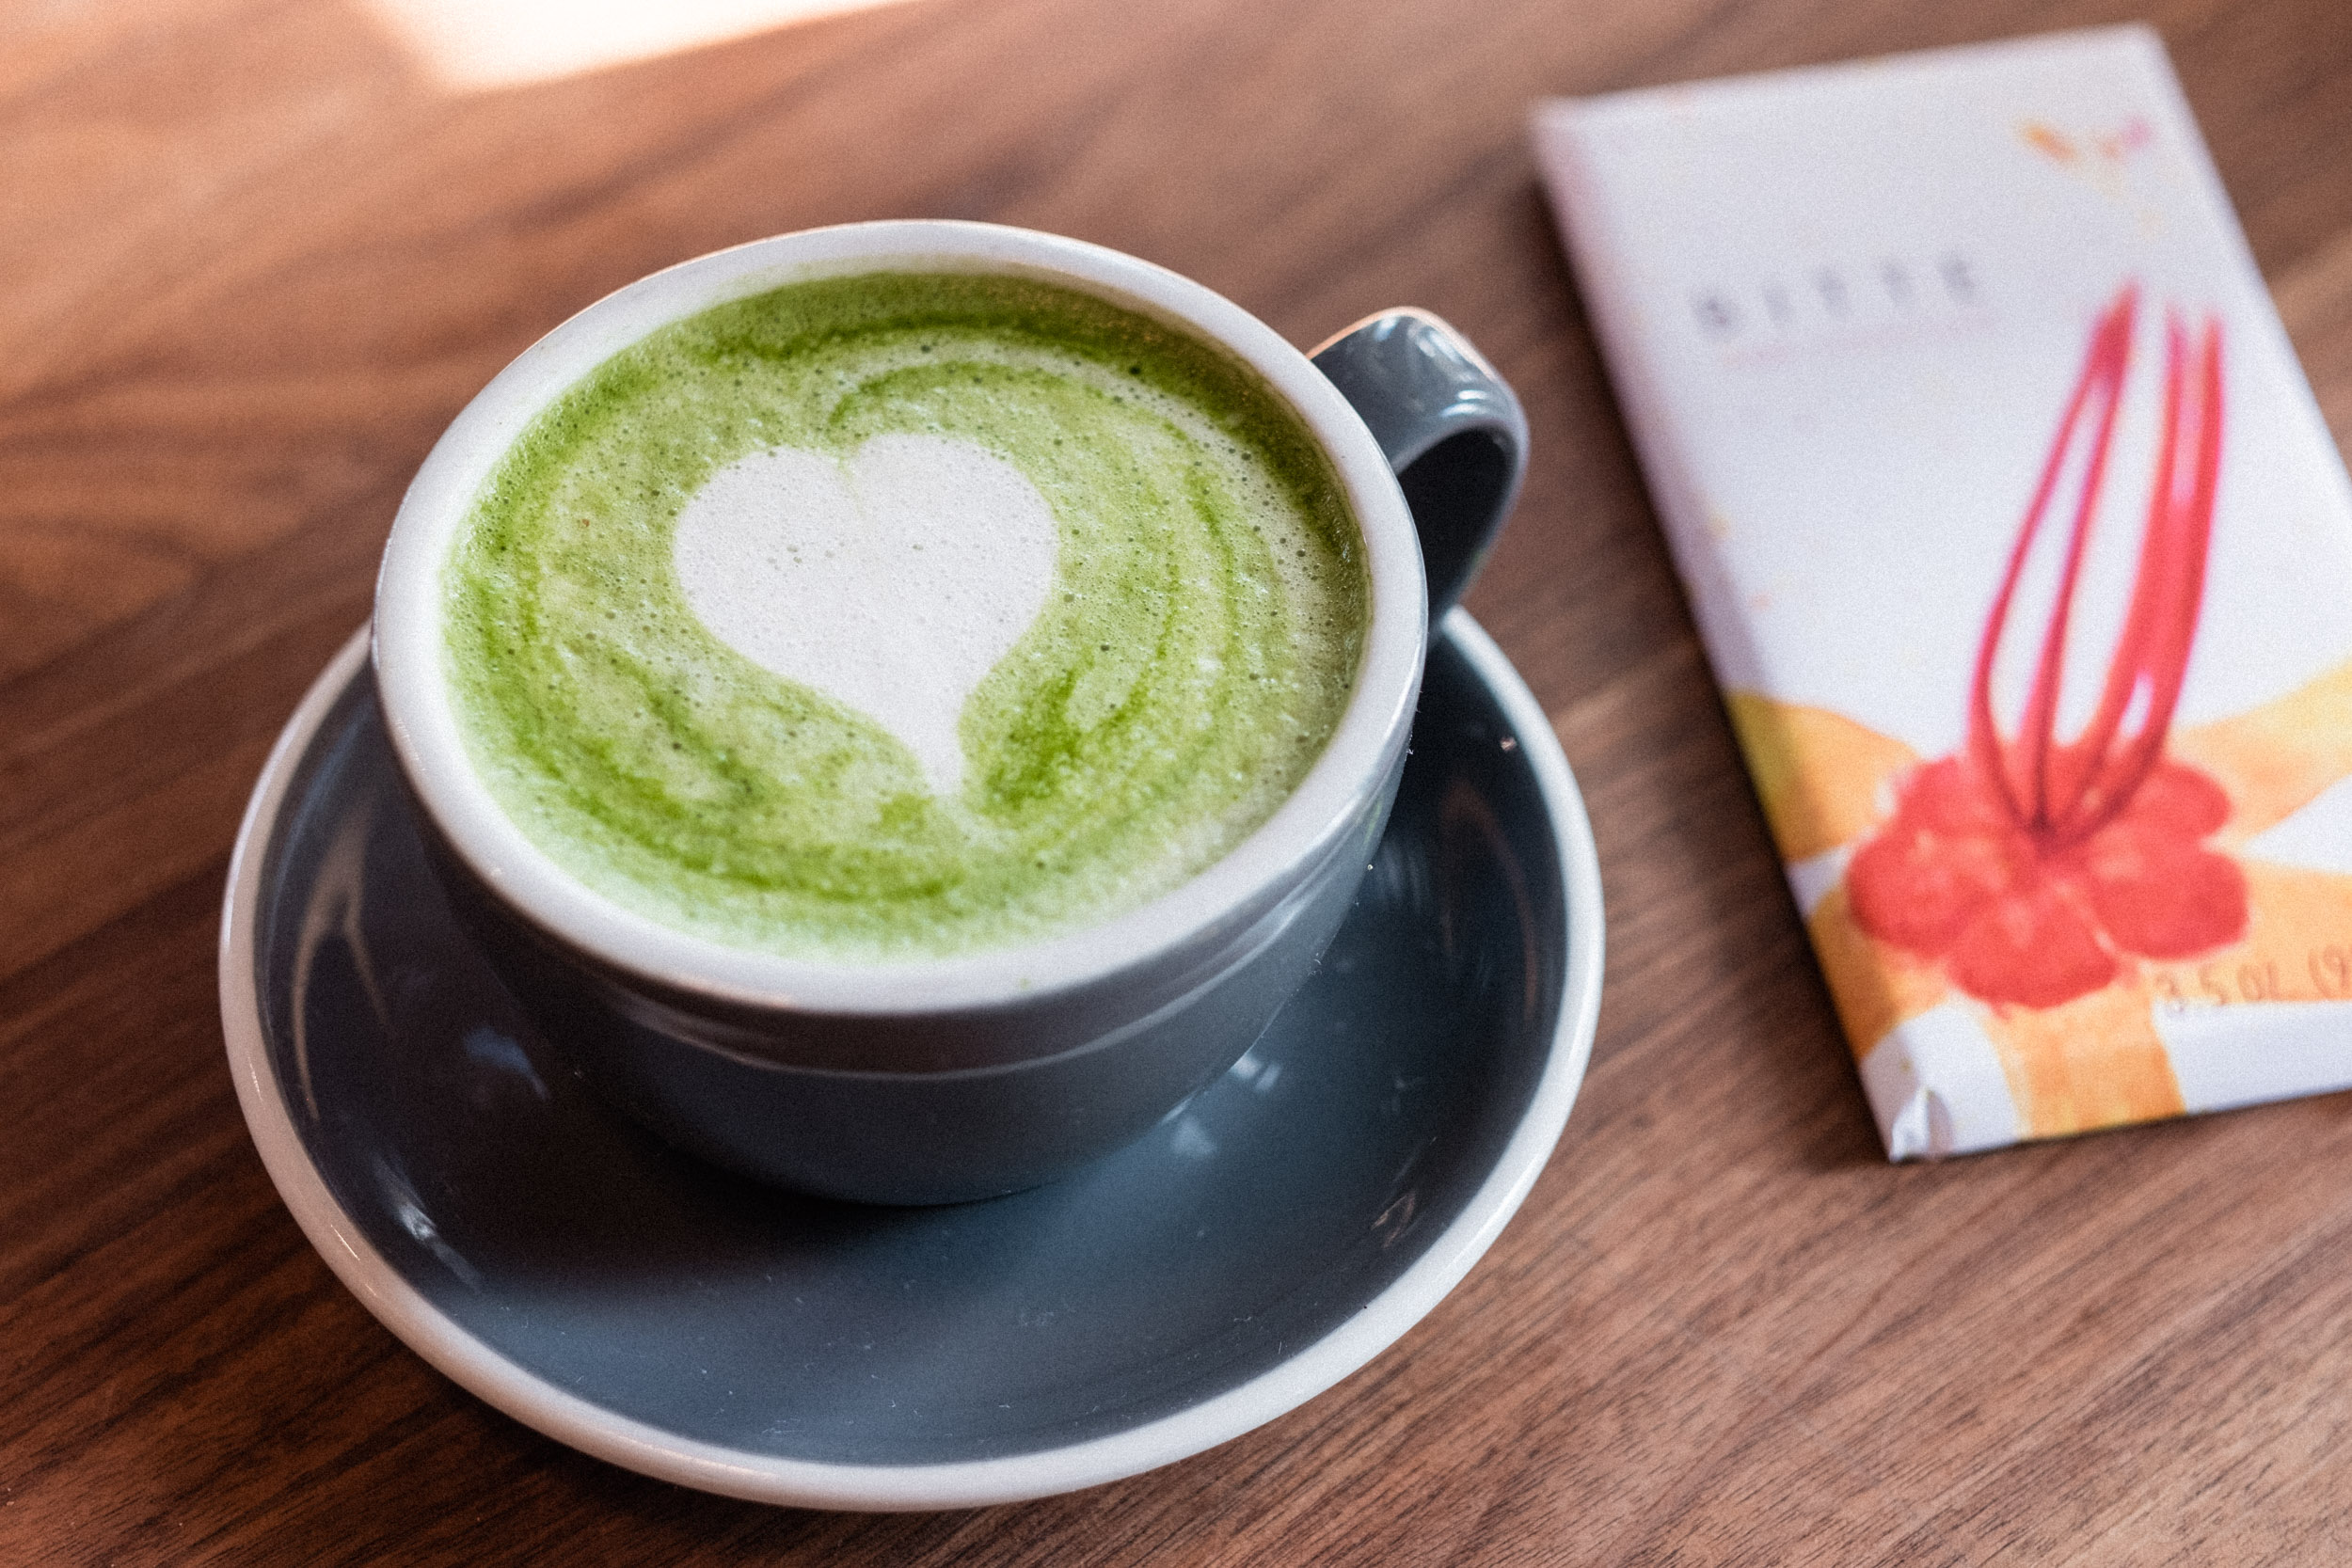 "On one of my visits, I tried their Matcha Latte. If I drink coffee as often as I'd like, my body starts complaining (headaches, anxiety, restlessness). I've been drinking Matcha for about 15 years. Now it's become a trendy item on many menus. Not all matcha is created equal, though. If you want to buy matcha to make at home on a regular basis, I would recommend carefully searching for a reputable source. To get the most (innumerable, incredible) benefits, Ceremonial Grade Matcha is ideal, if you can afford it! Otherwise Premium grade is great too. I'll spare you an essay on matcha here, so google ""Matcha Benefits"" and go down the rabbit hole as much as you please."